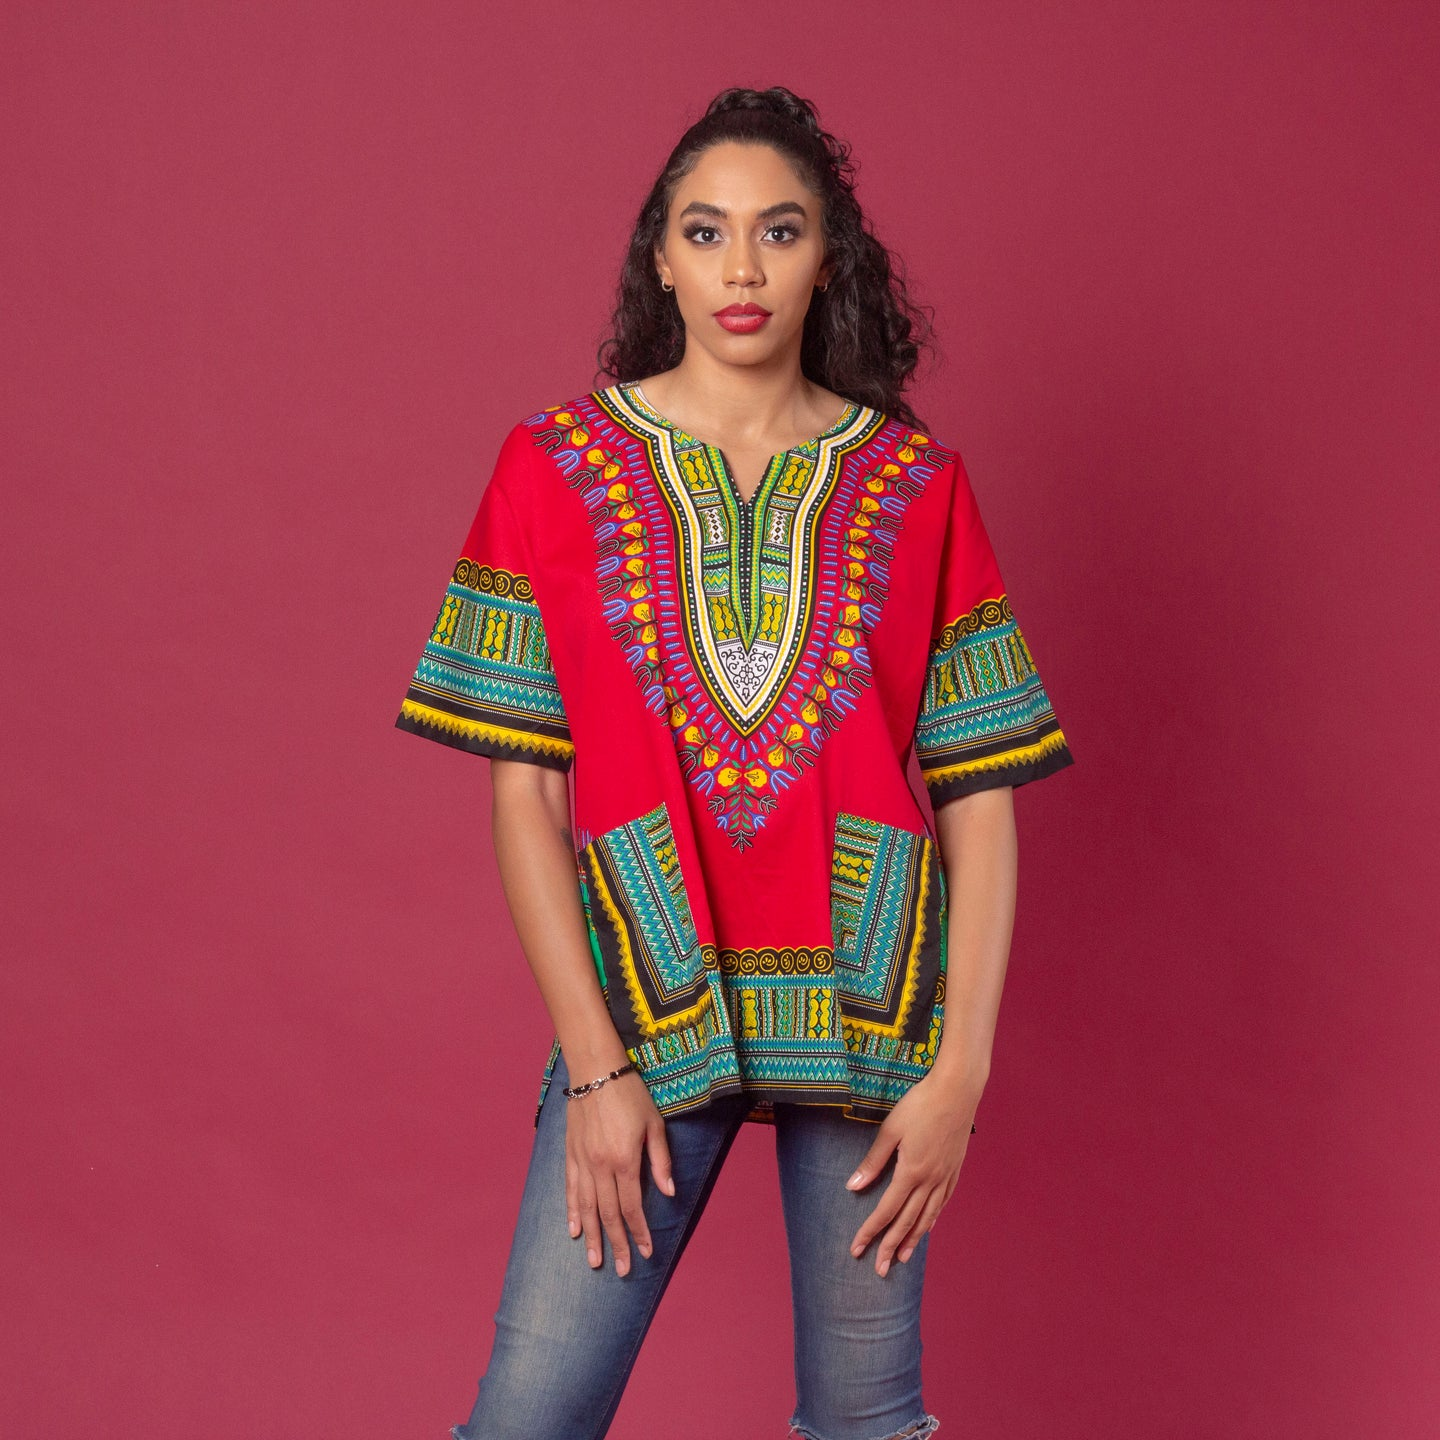 Unisex red african print classic danshiki also known as dashiki